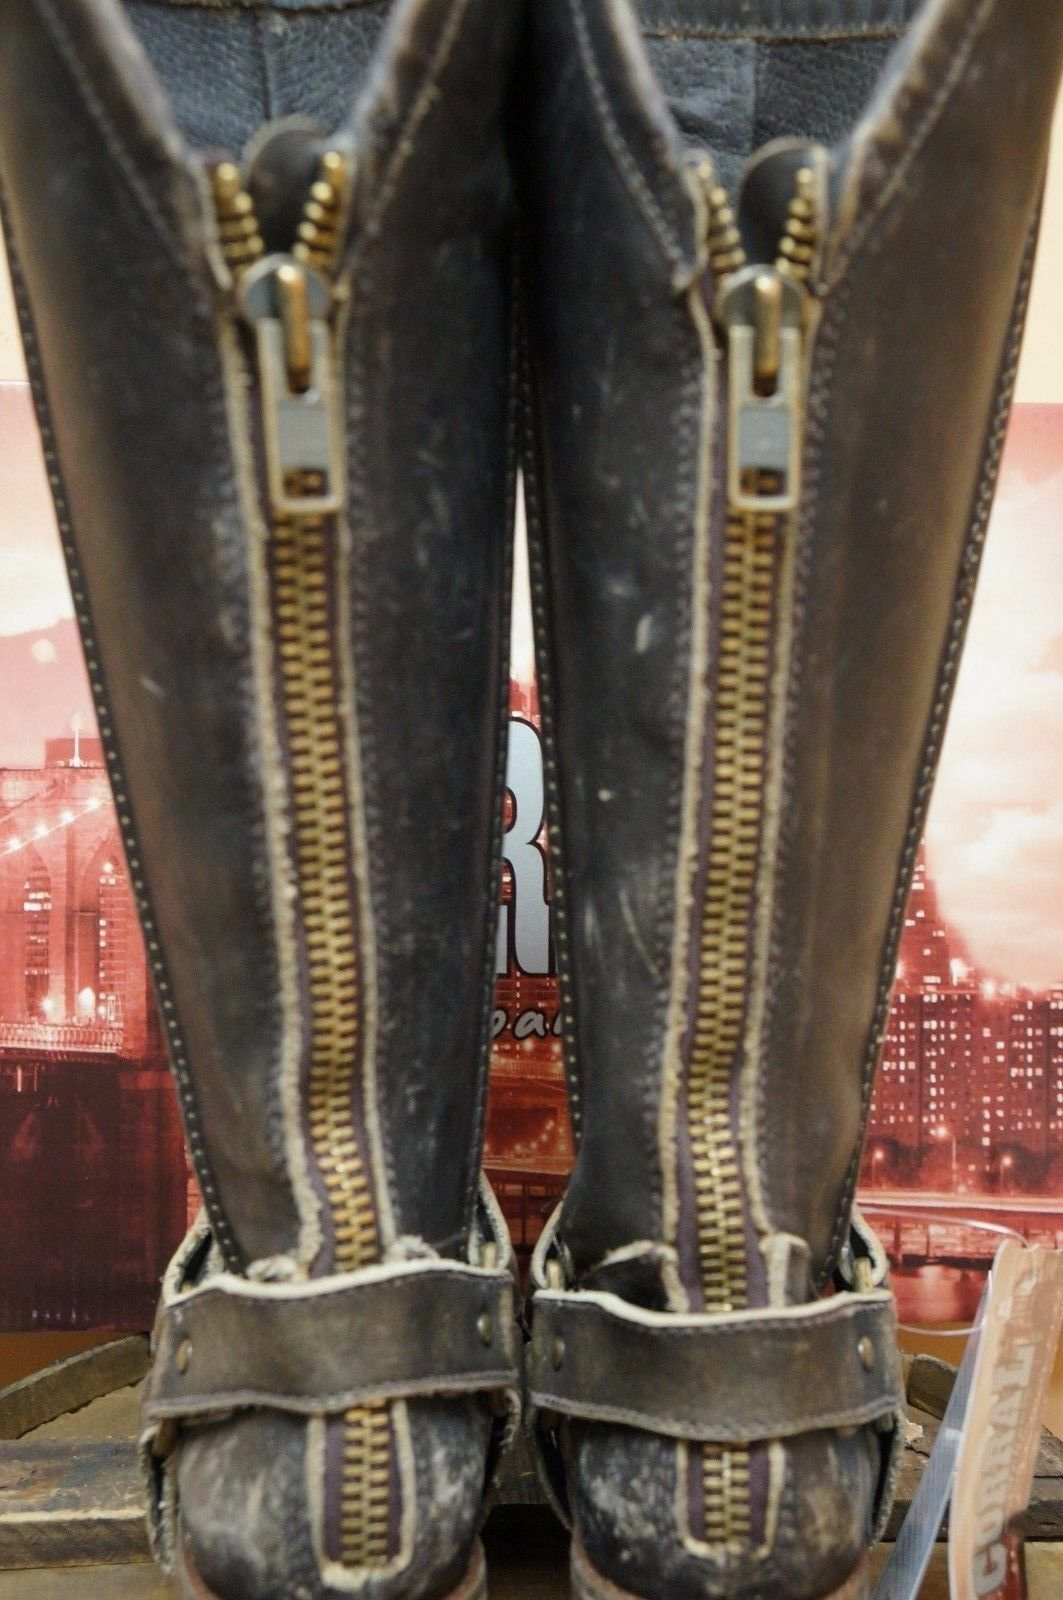 LADIES TALL WESTERN bottes DISTRESSED DISTRESSED DISTRESSED marron WITH HARNESS BY CORRAL P5100 822425